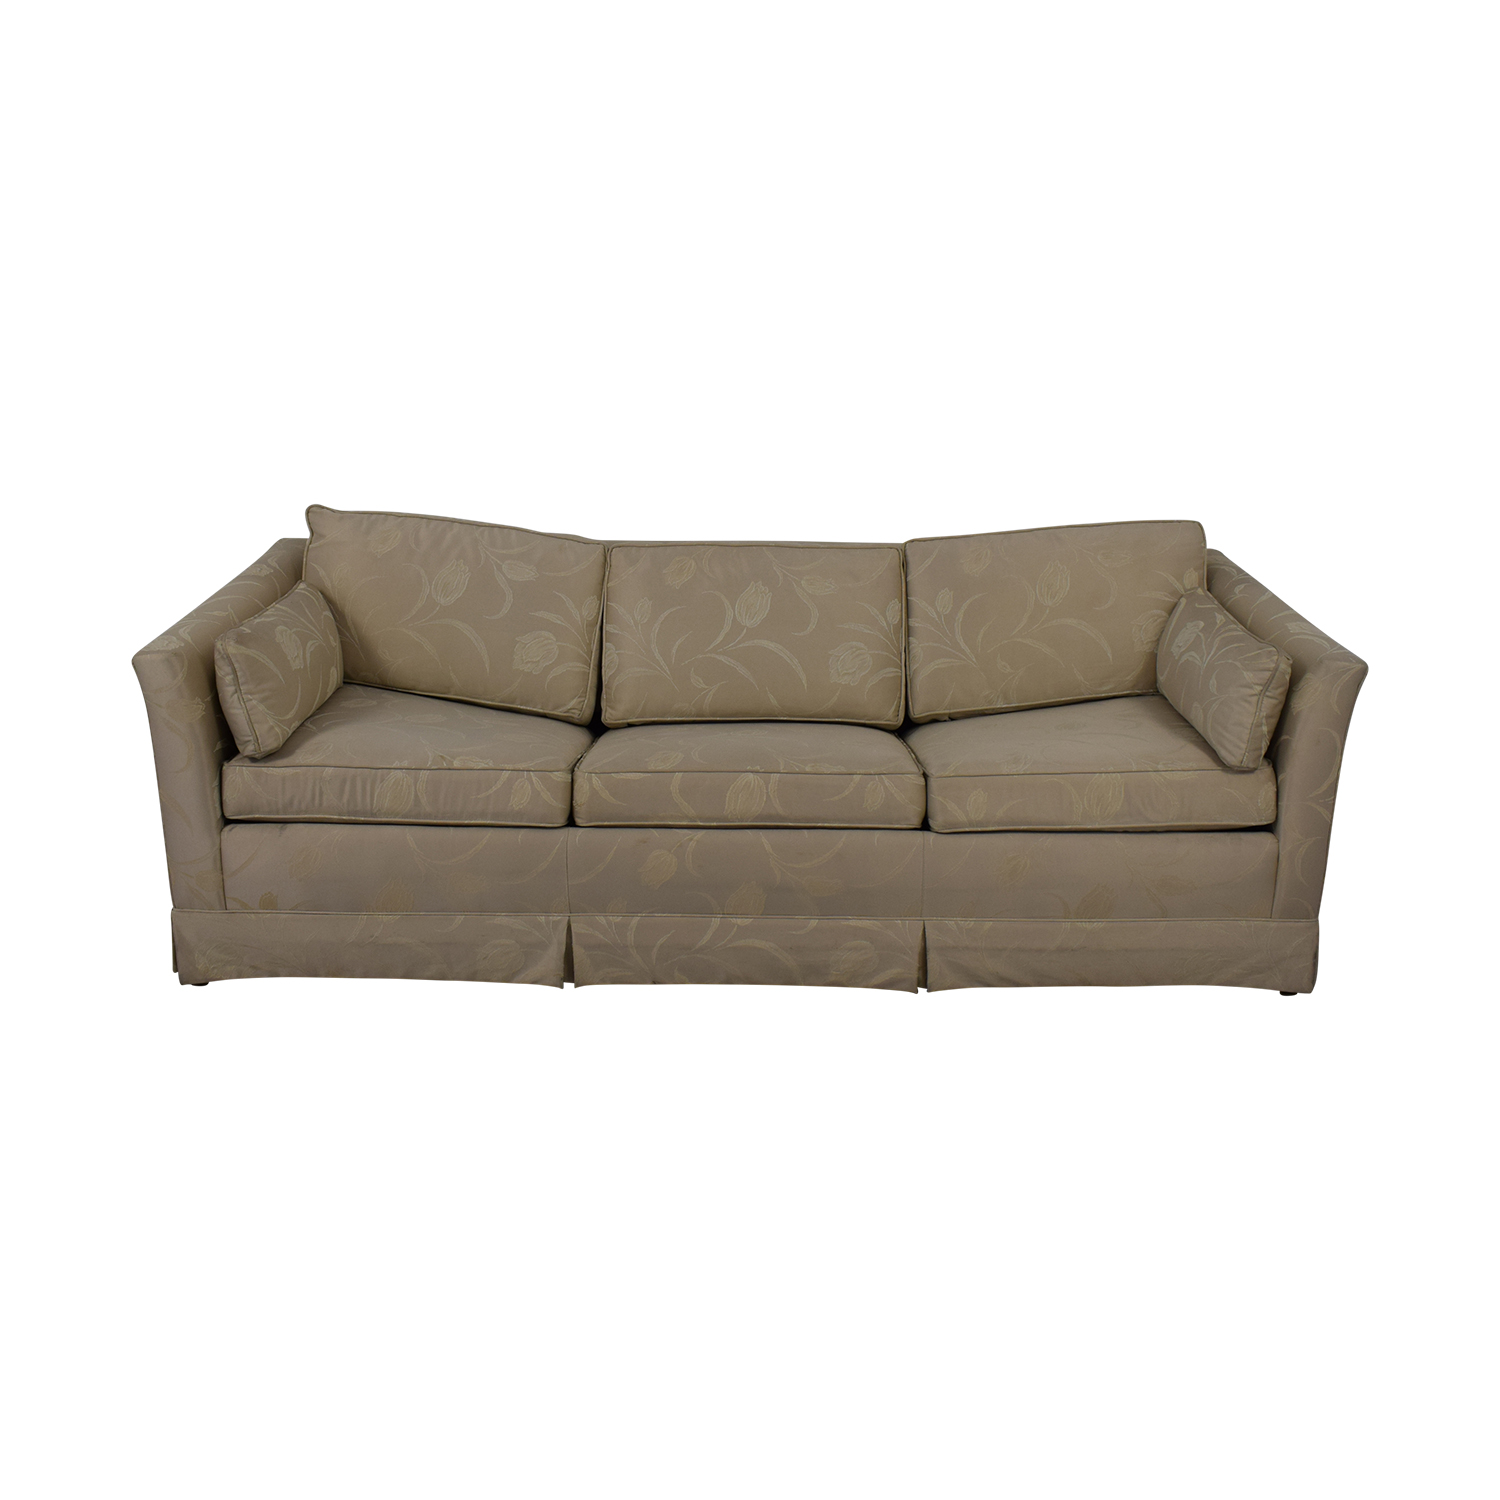 Stanton Cooper Floral Full Sleeper Sofa on sale